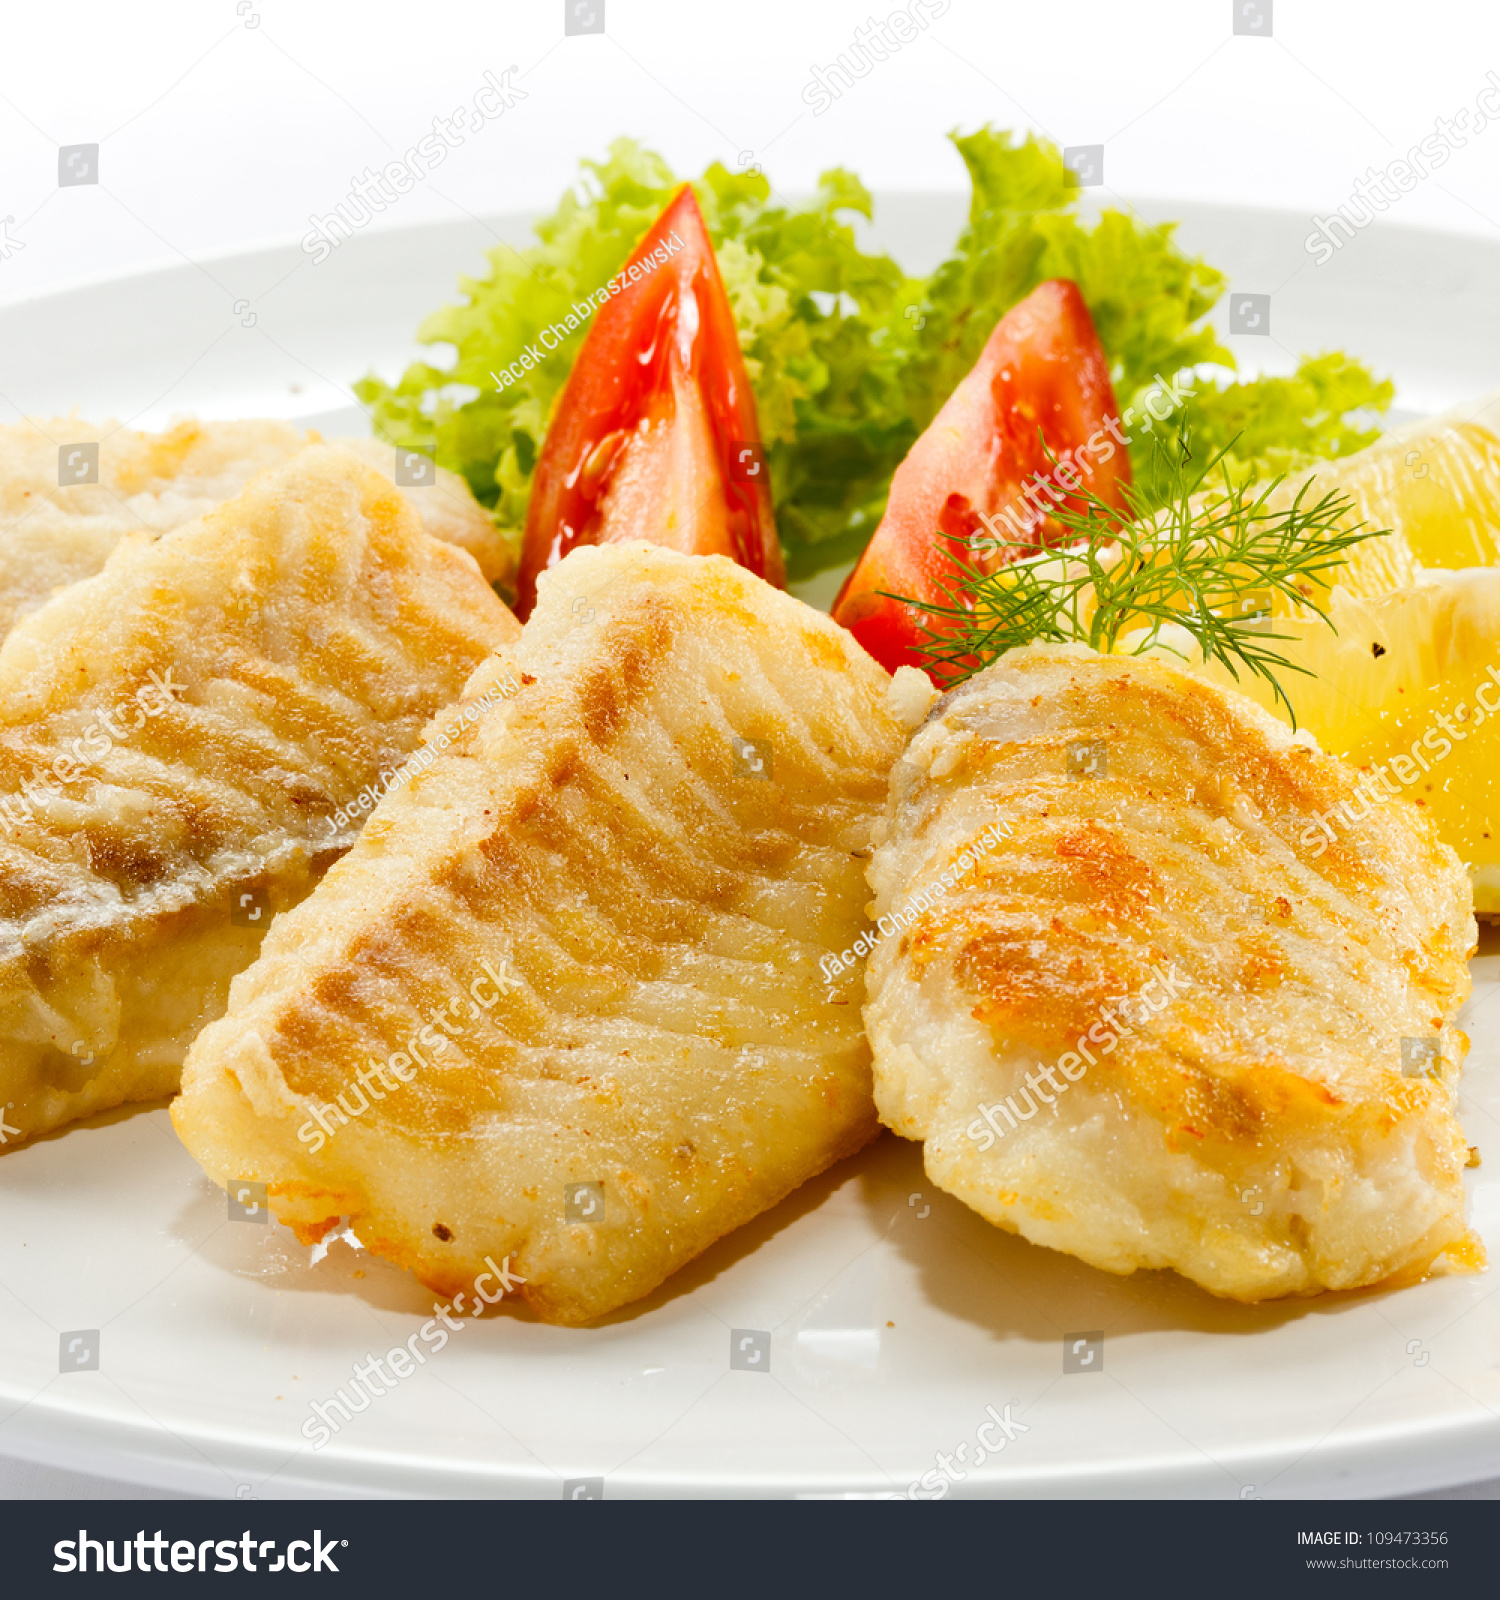 Fish dish fried fish fillet vegetables stock photo for Filet of fish